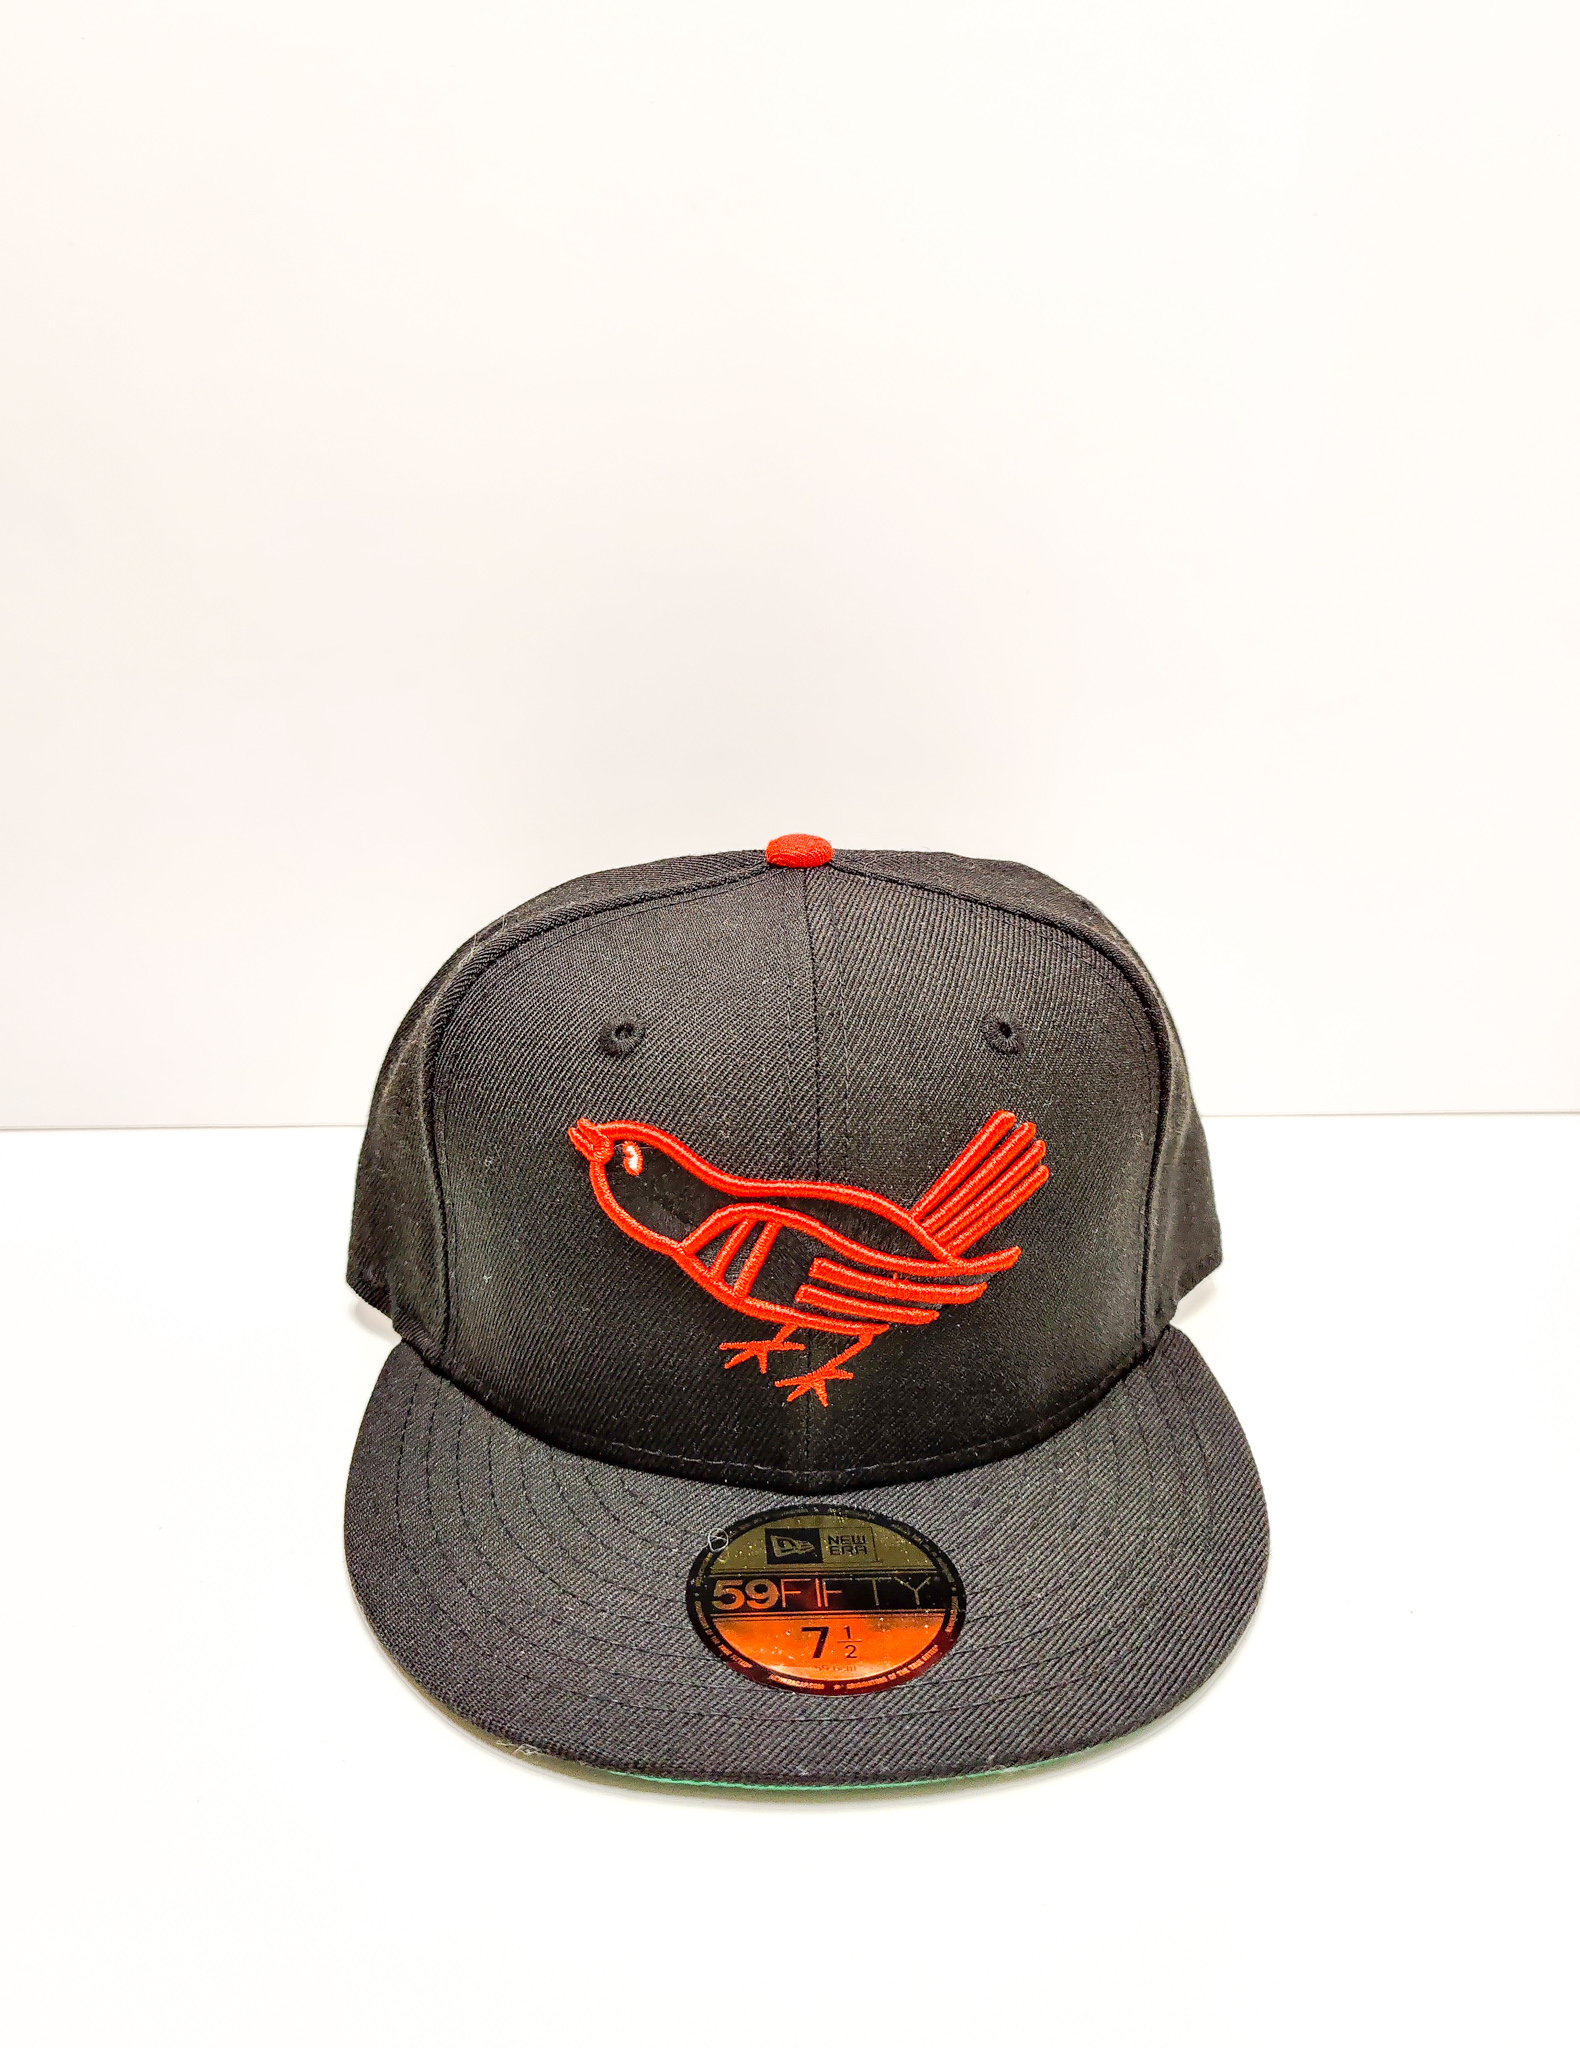 New Era Cooperstown Collection Orioles